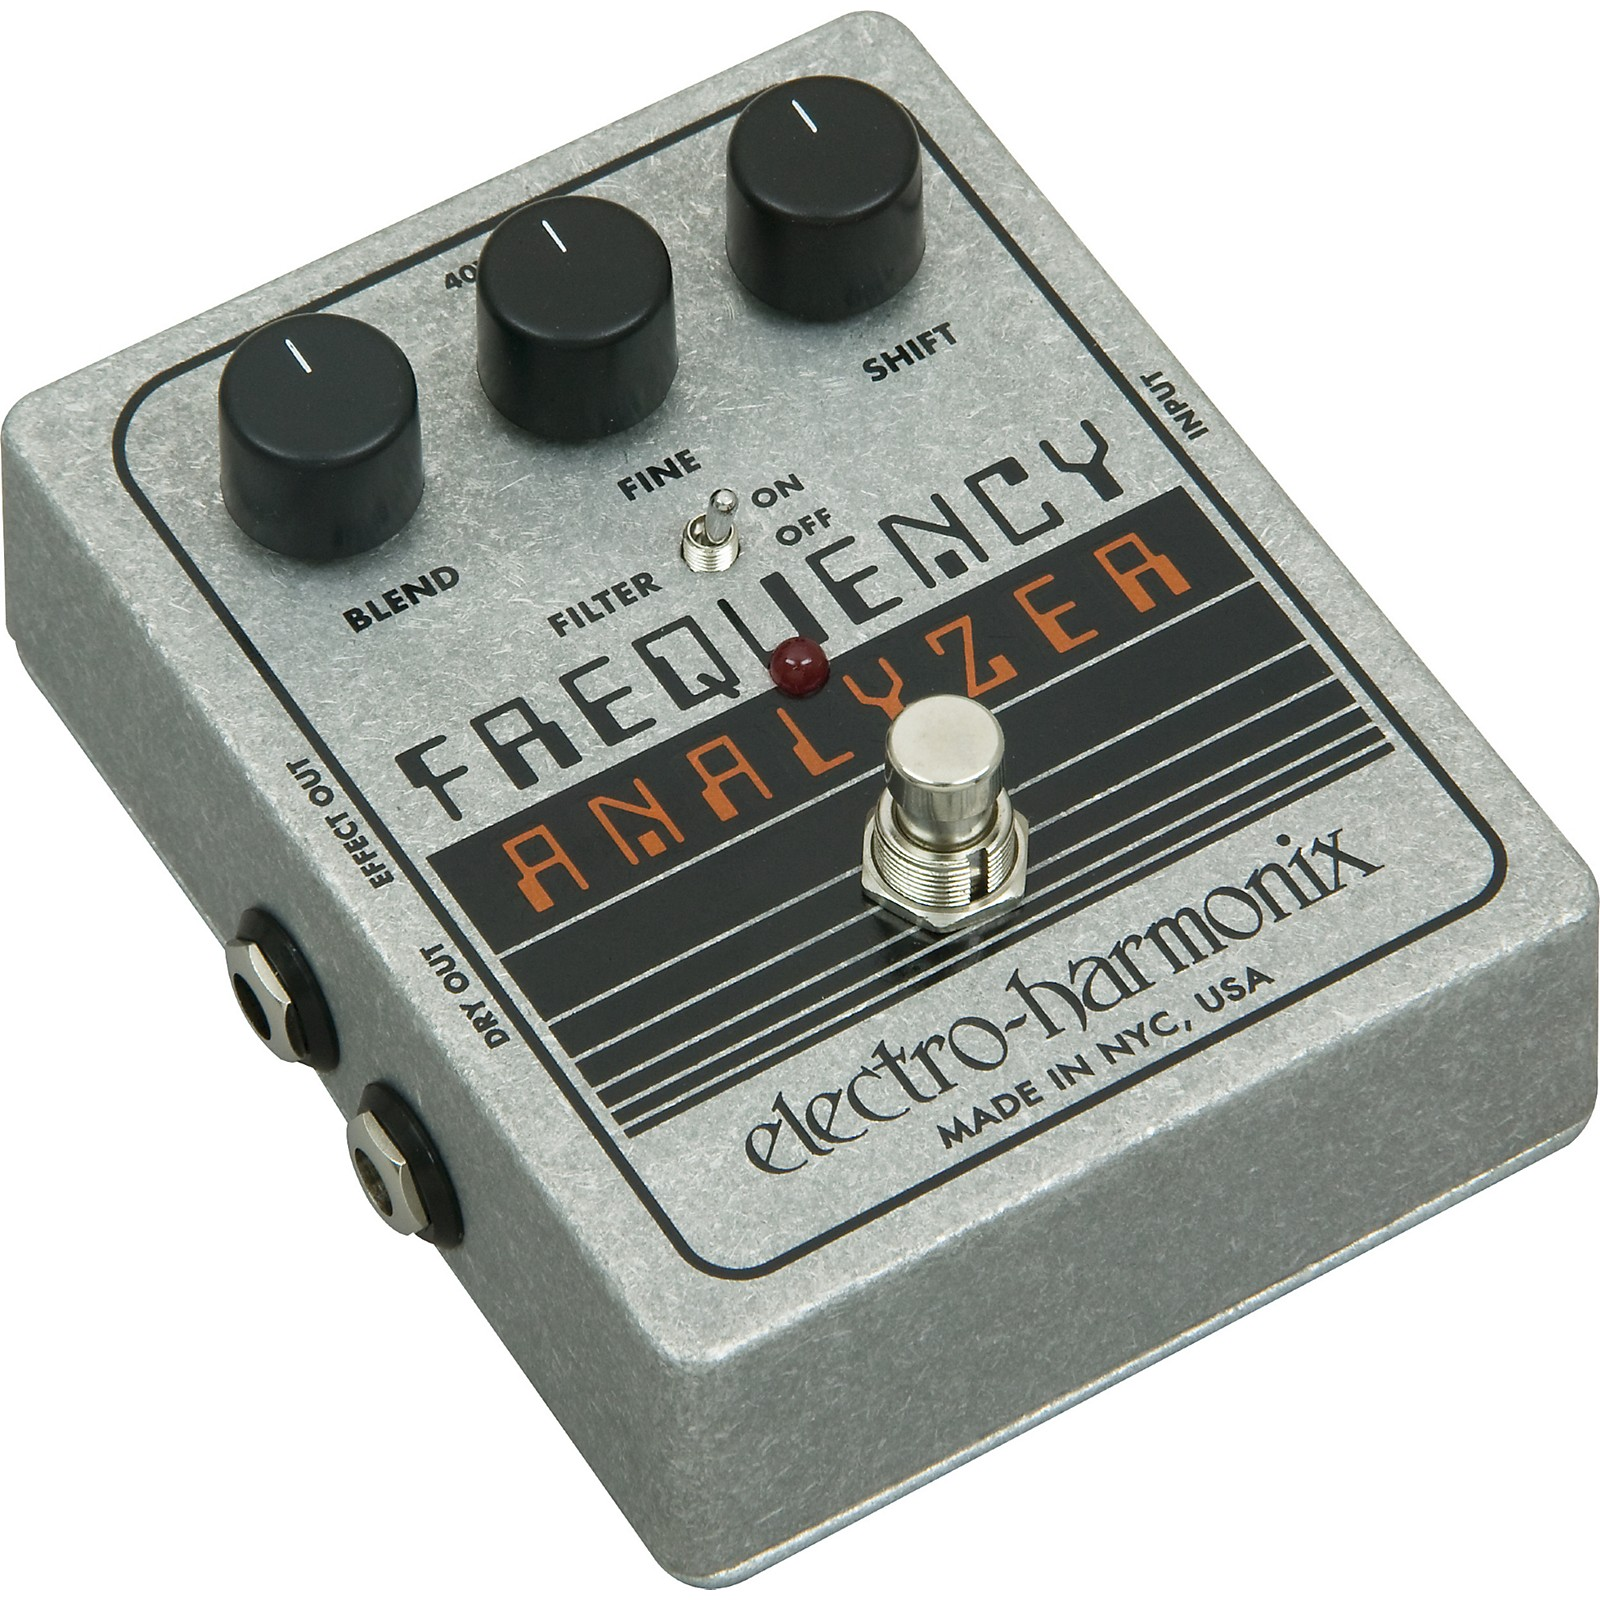 ELECTRO-HARMONIX-Frequency-Analyzer-RING-MODULATOR-sku-23810